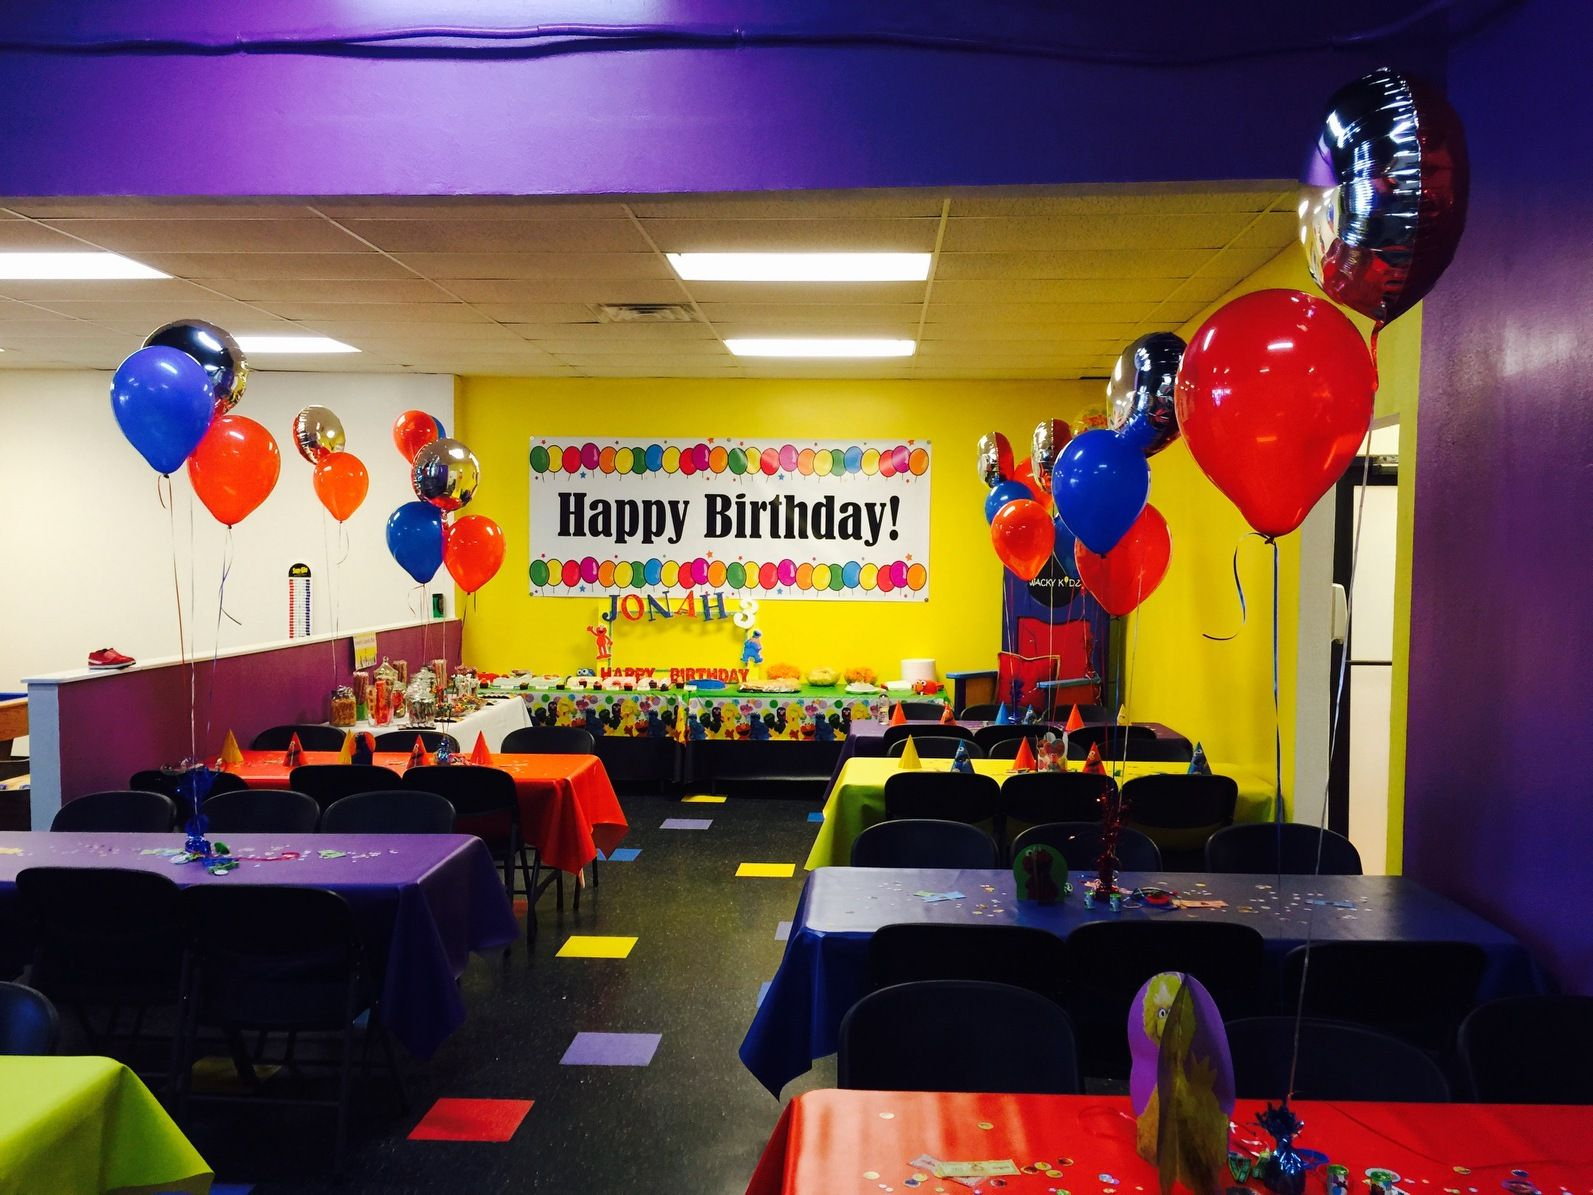 Do You Live In Miami Looking For A Beautiful Place To Hose Your Child Birthday Party Here Is A Birthday Party Places Party Places For Kids Fun Birthday Party